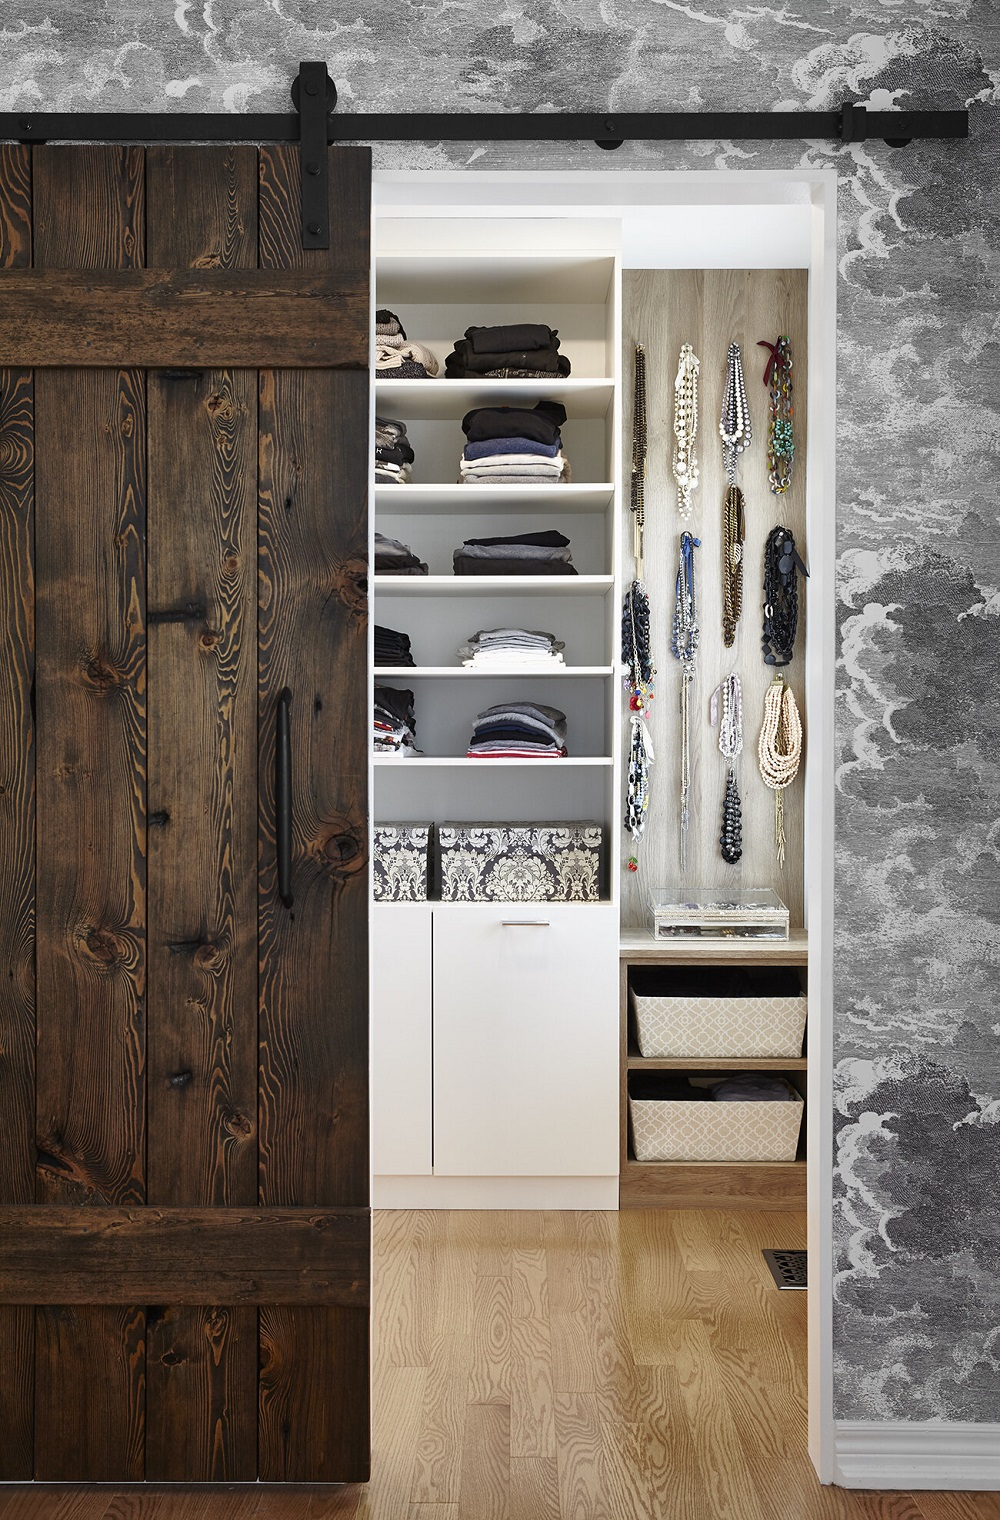 wc13-1 Cool ideas for walk-in closets that you should have in your home